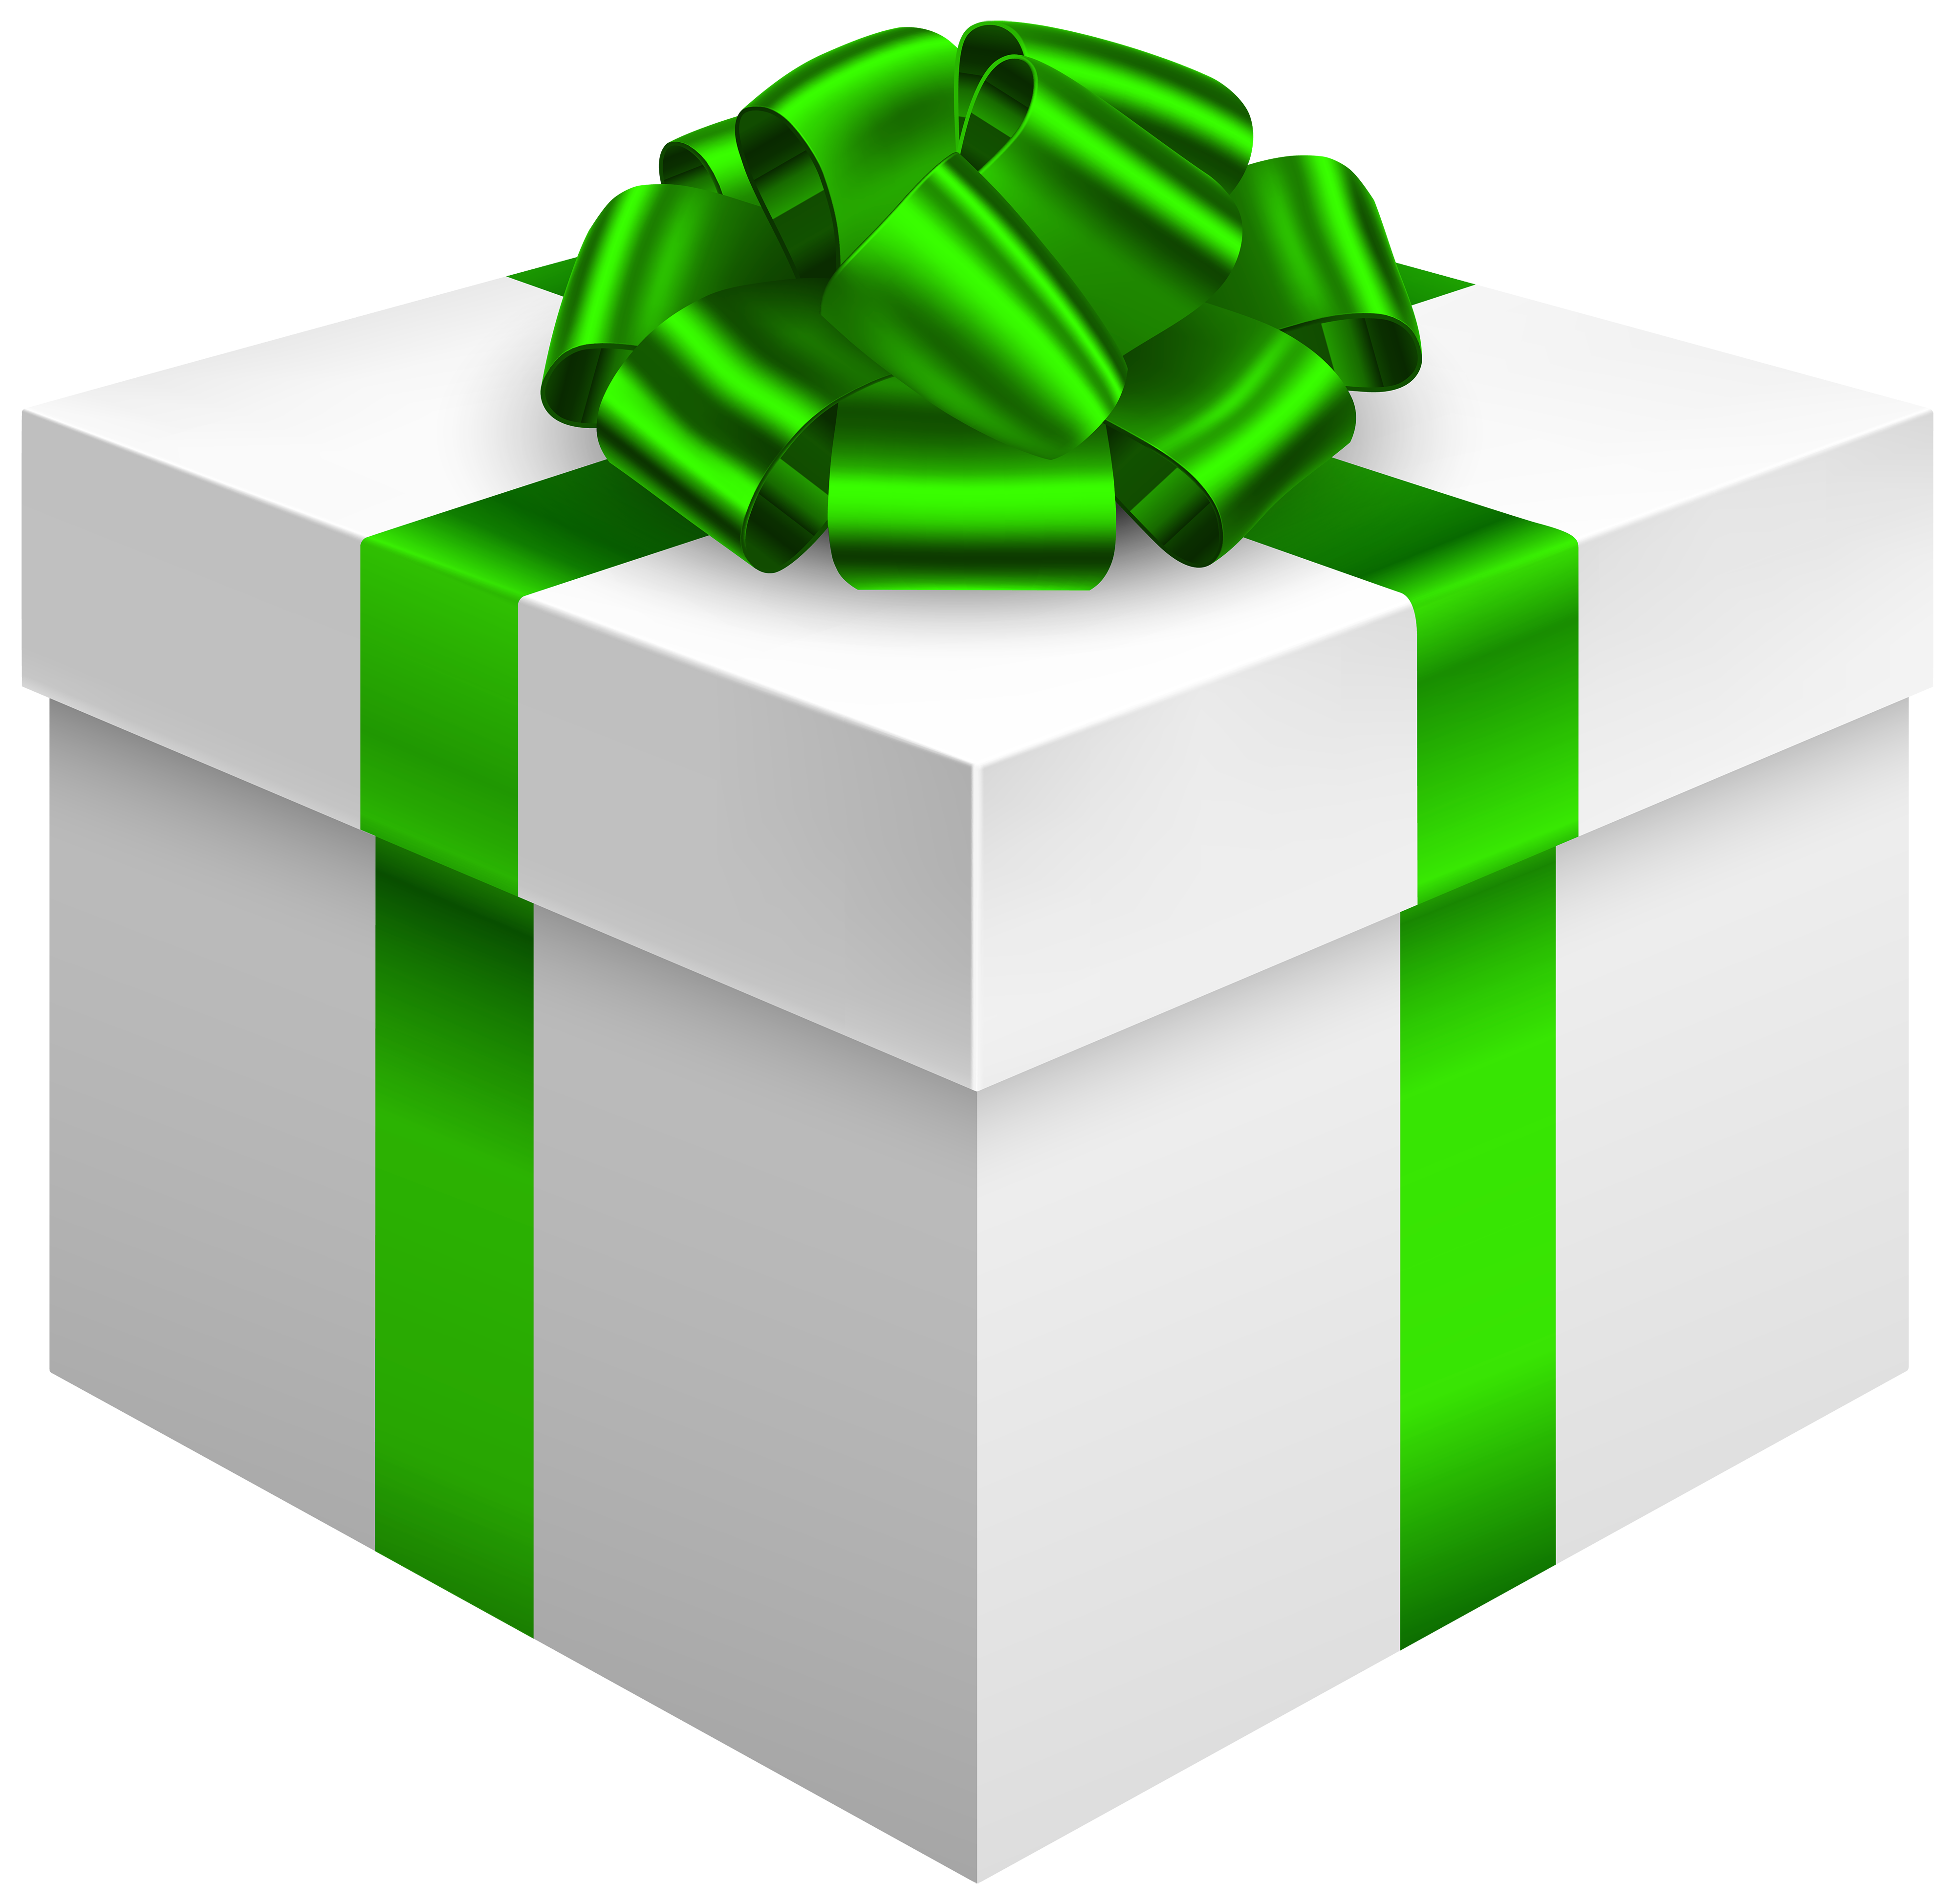 White gift bow png. Box with green clipart